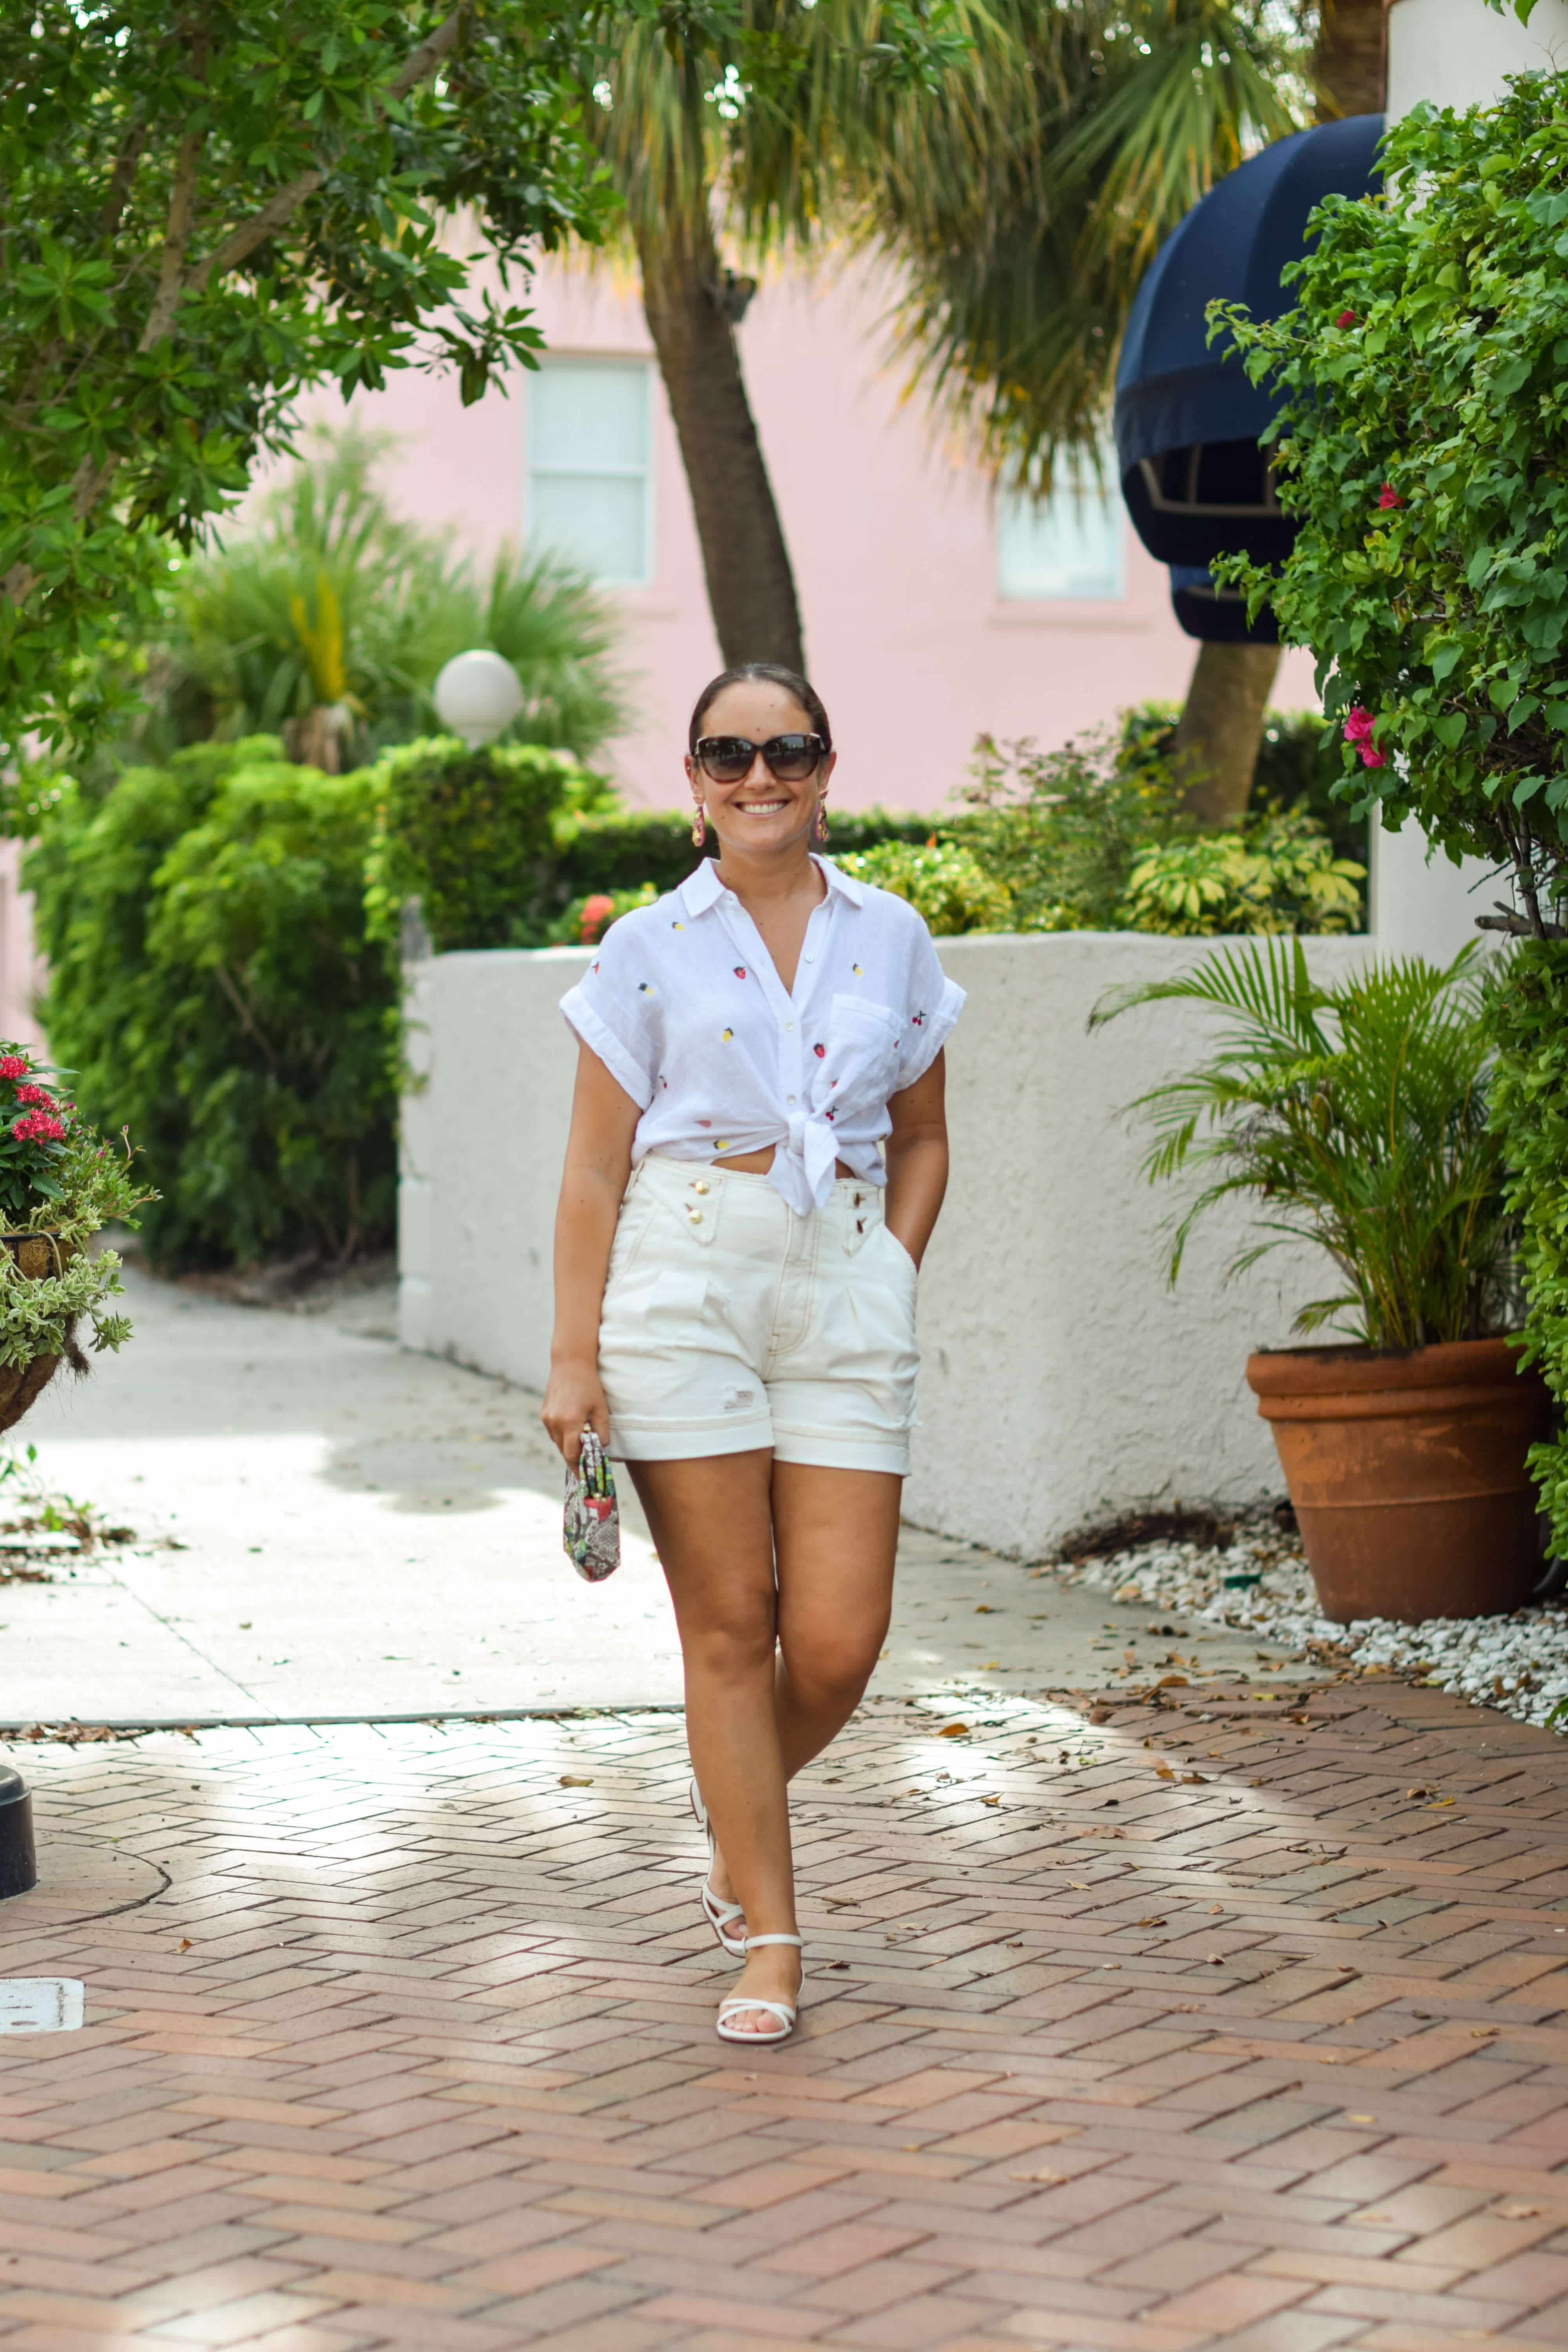 Rails Shirt Retrofete Shorts Margaux Shoes Clare V Bag Outfit by Modnitsa Styling